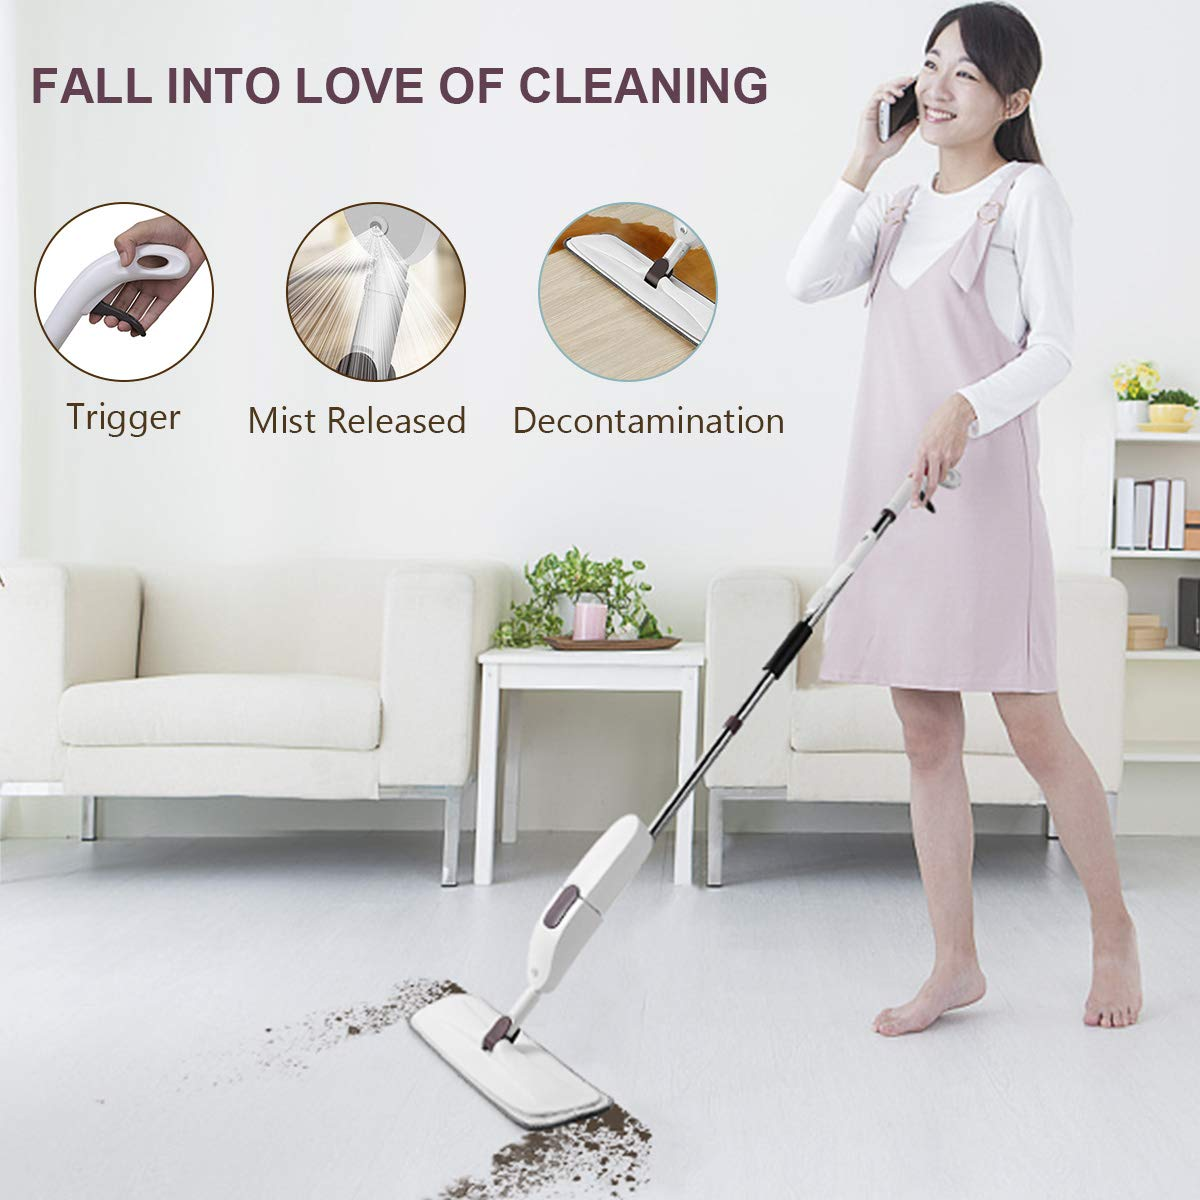 Aicehome Spray Mop, Floor Mop and Microfiber Mop with Integrated Spray and 360 Degree Rotation,Dry Wet Mop with 3 Free Reusable Microfiber Pads for Cleaning Hardwood, Laminate, Tile Floor (White1) by Aicehome (Image #7)